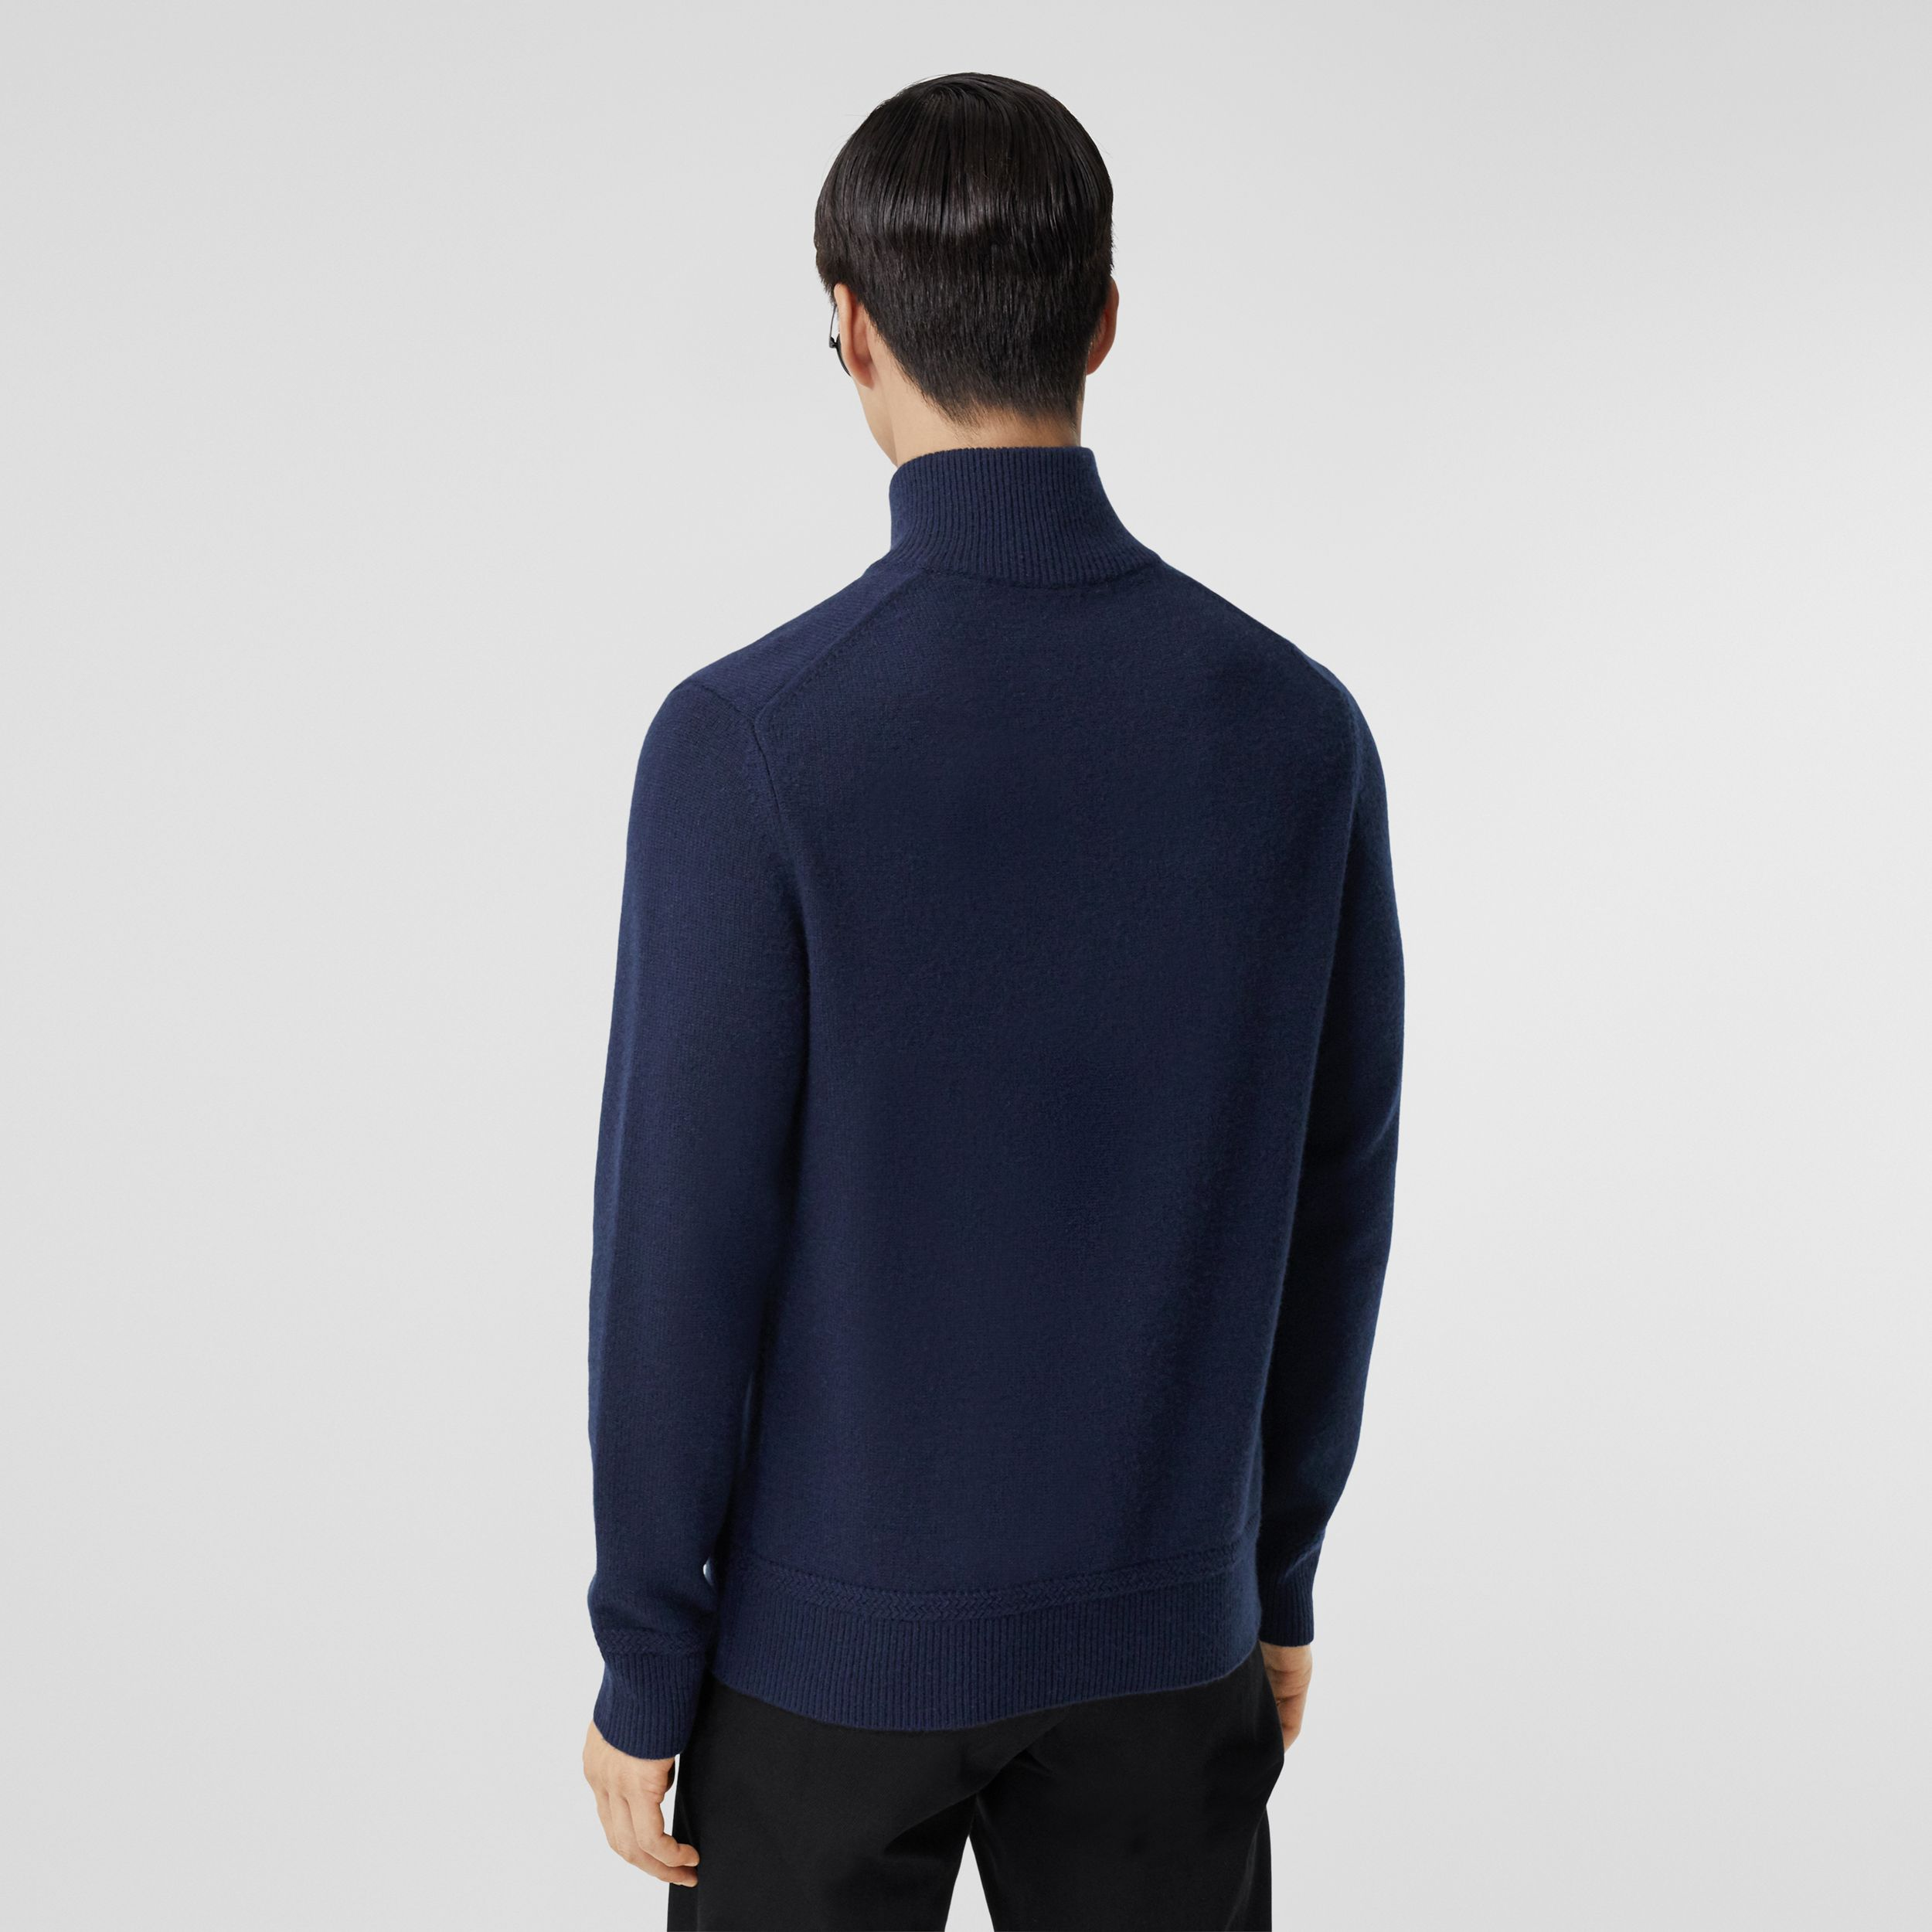 Monogram Motif Cashmere Funnel Neck Sweater in Navy - Men | Burberry - 3